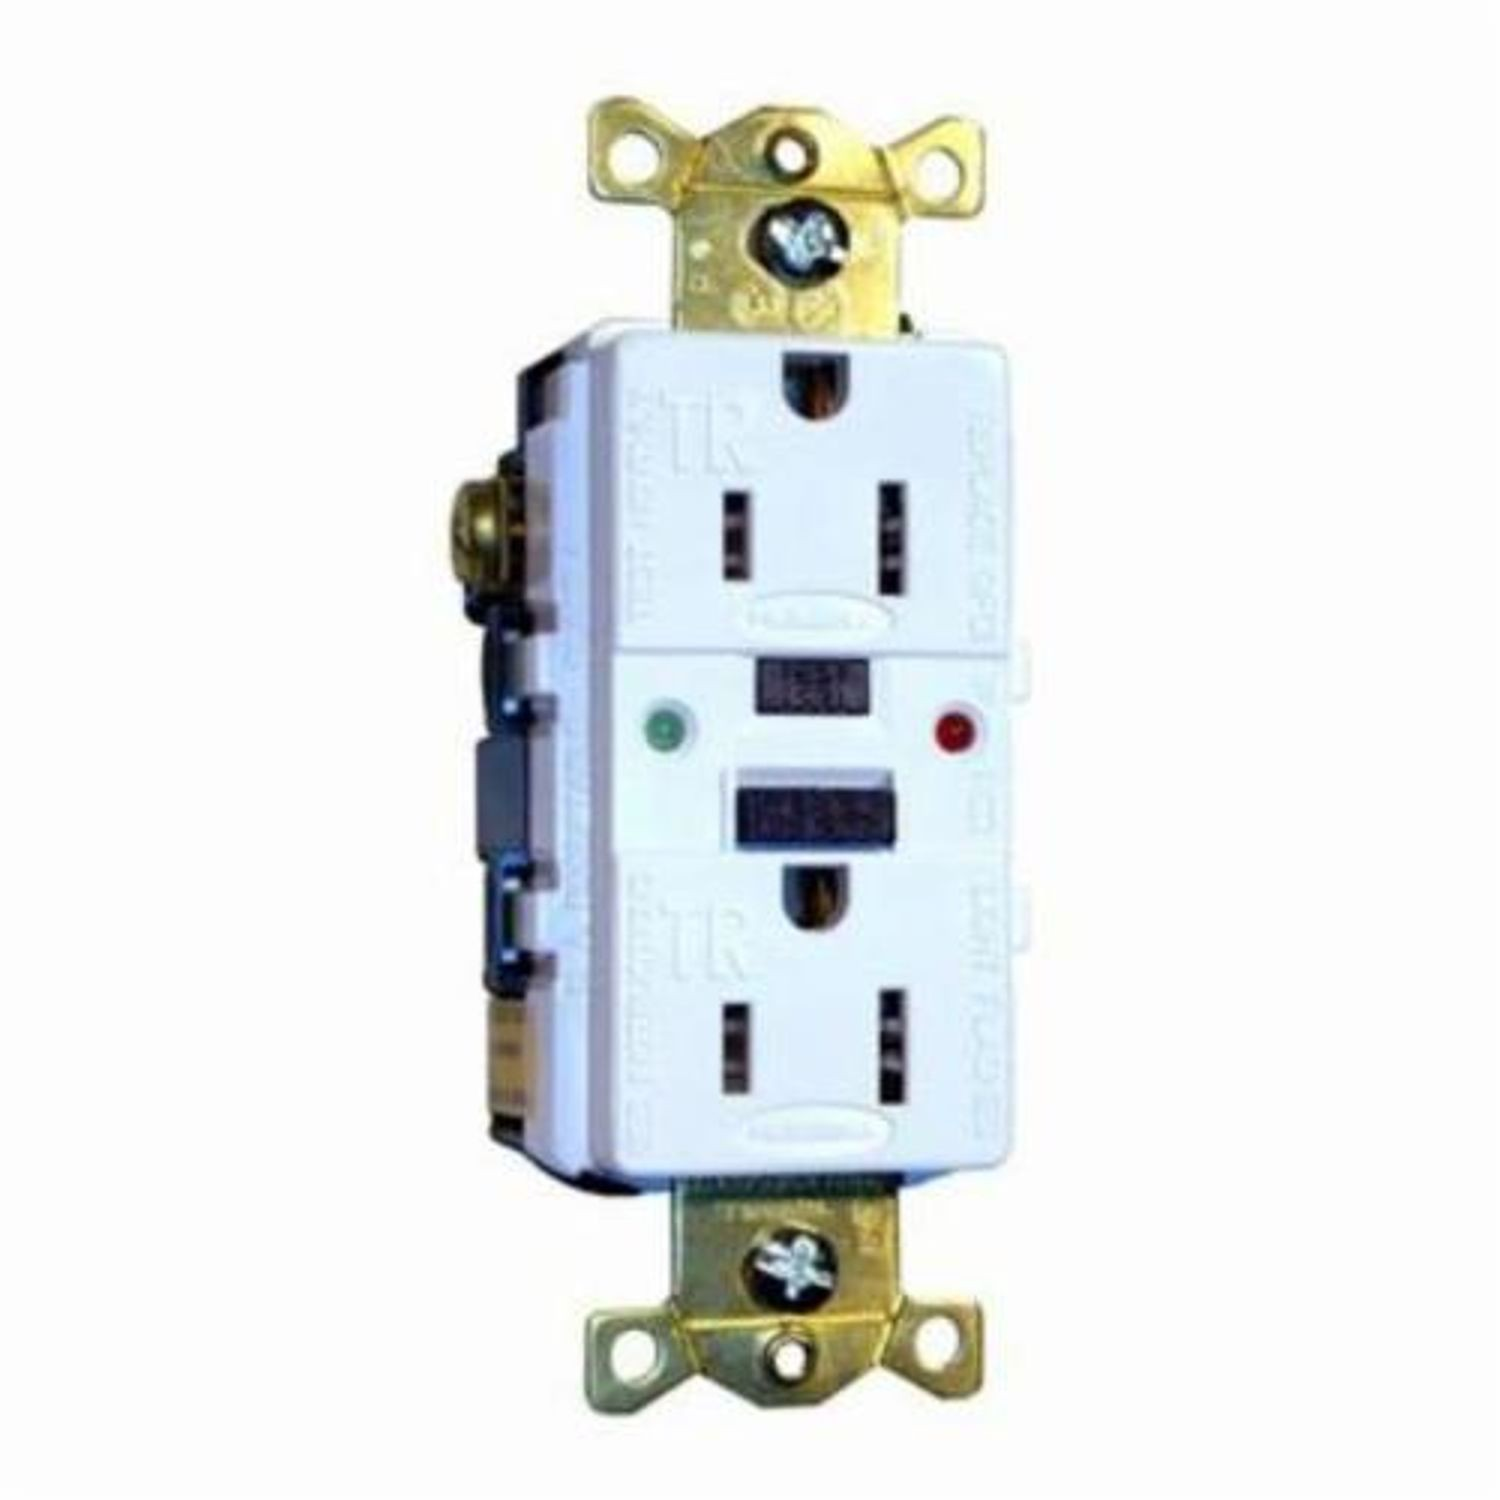 Hubbell Commercial Heavy Duty Tamper Resistant Gfci Receptacle With Wiring Receptacles Led Light 125 Vac 20 A 2 Poles 3 Wires White